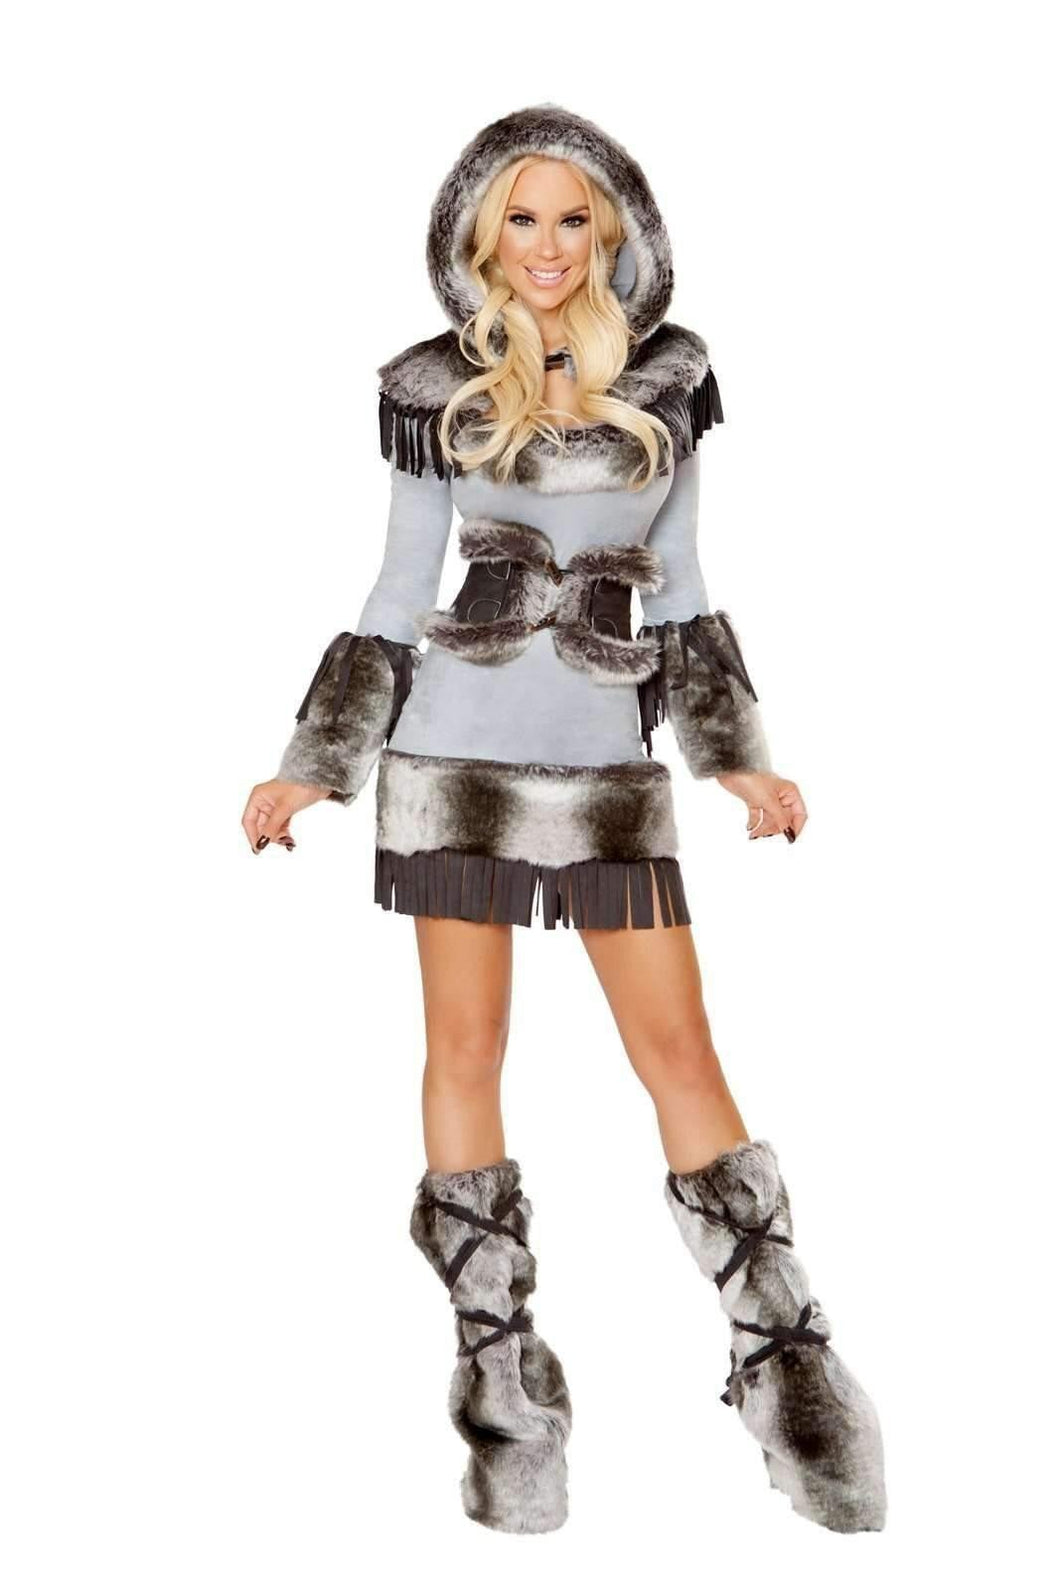 Roma Costume 4809 - 3Pc Eskimo Cutie-Costumes-Roma-Small-Grey/Black-Unspoken Fashion